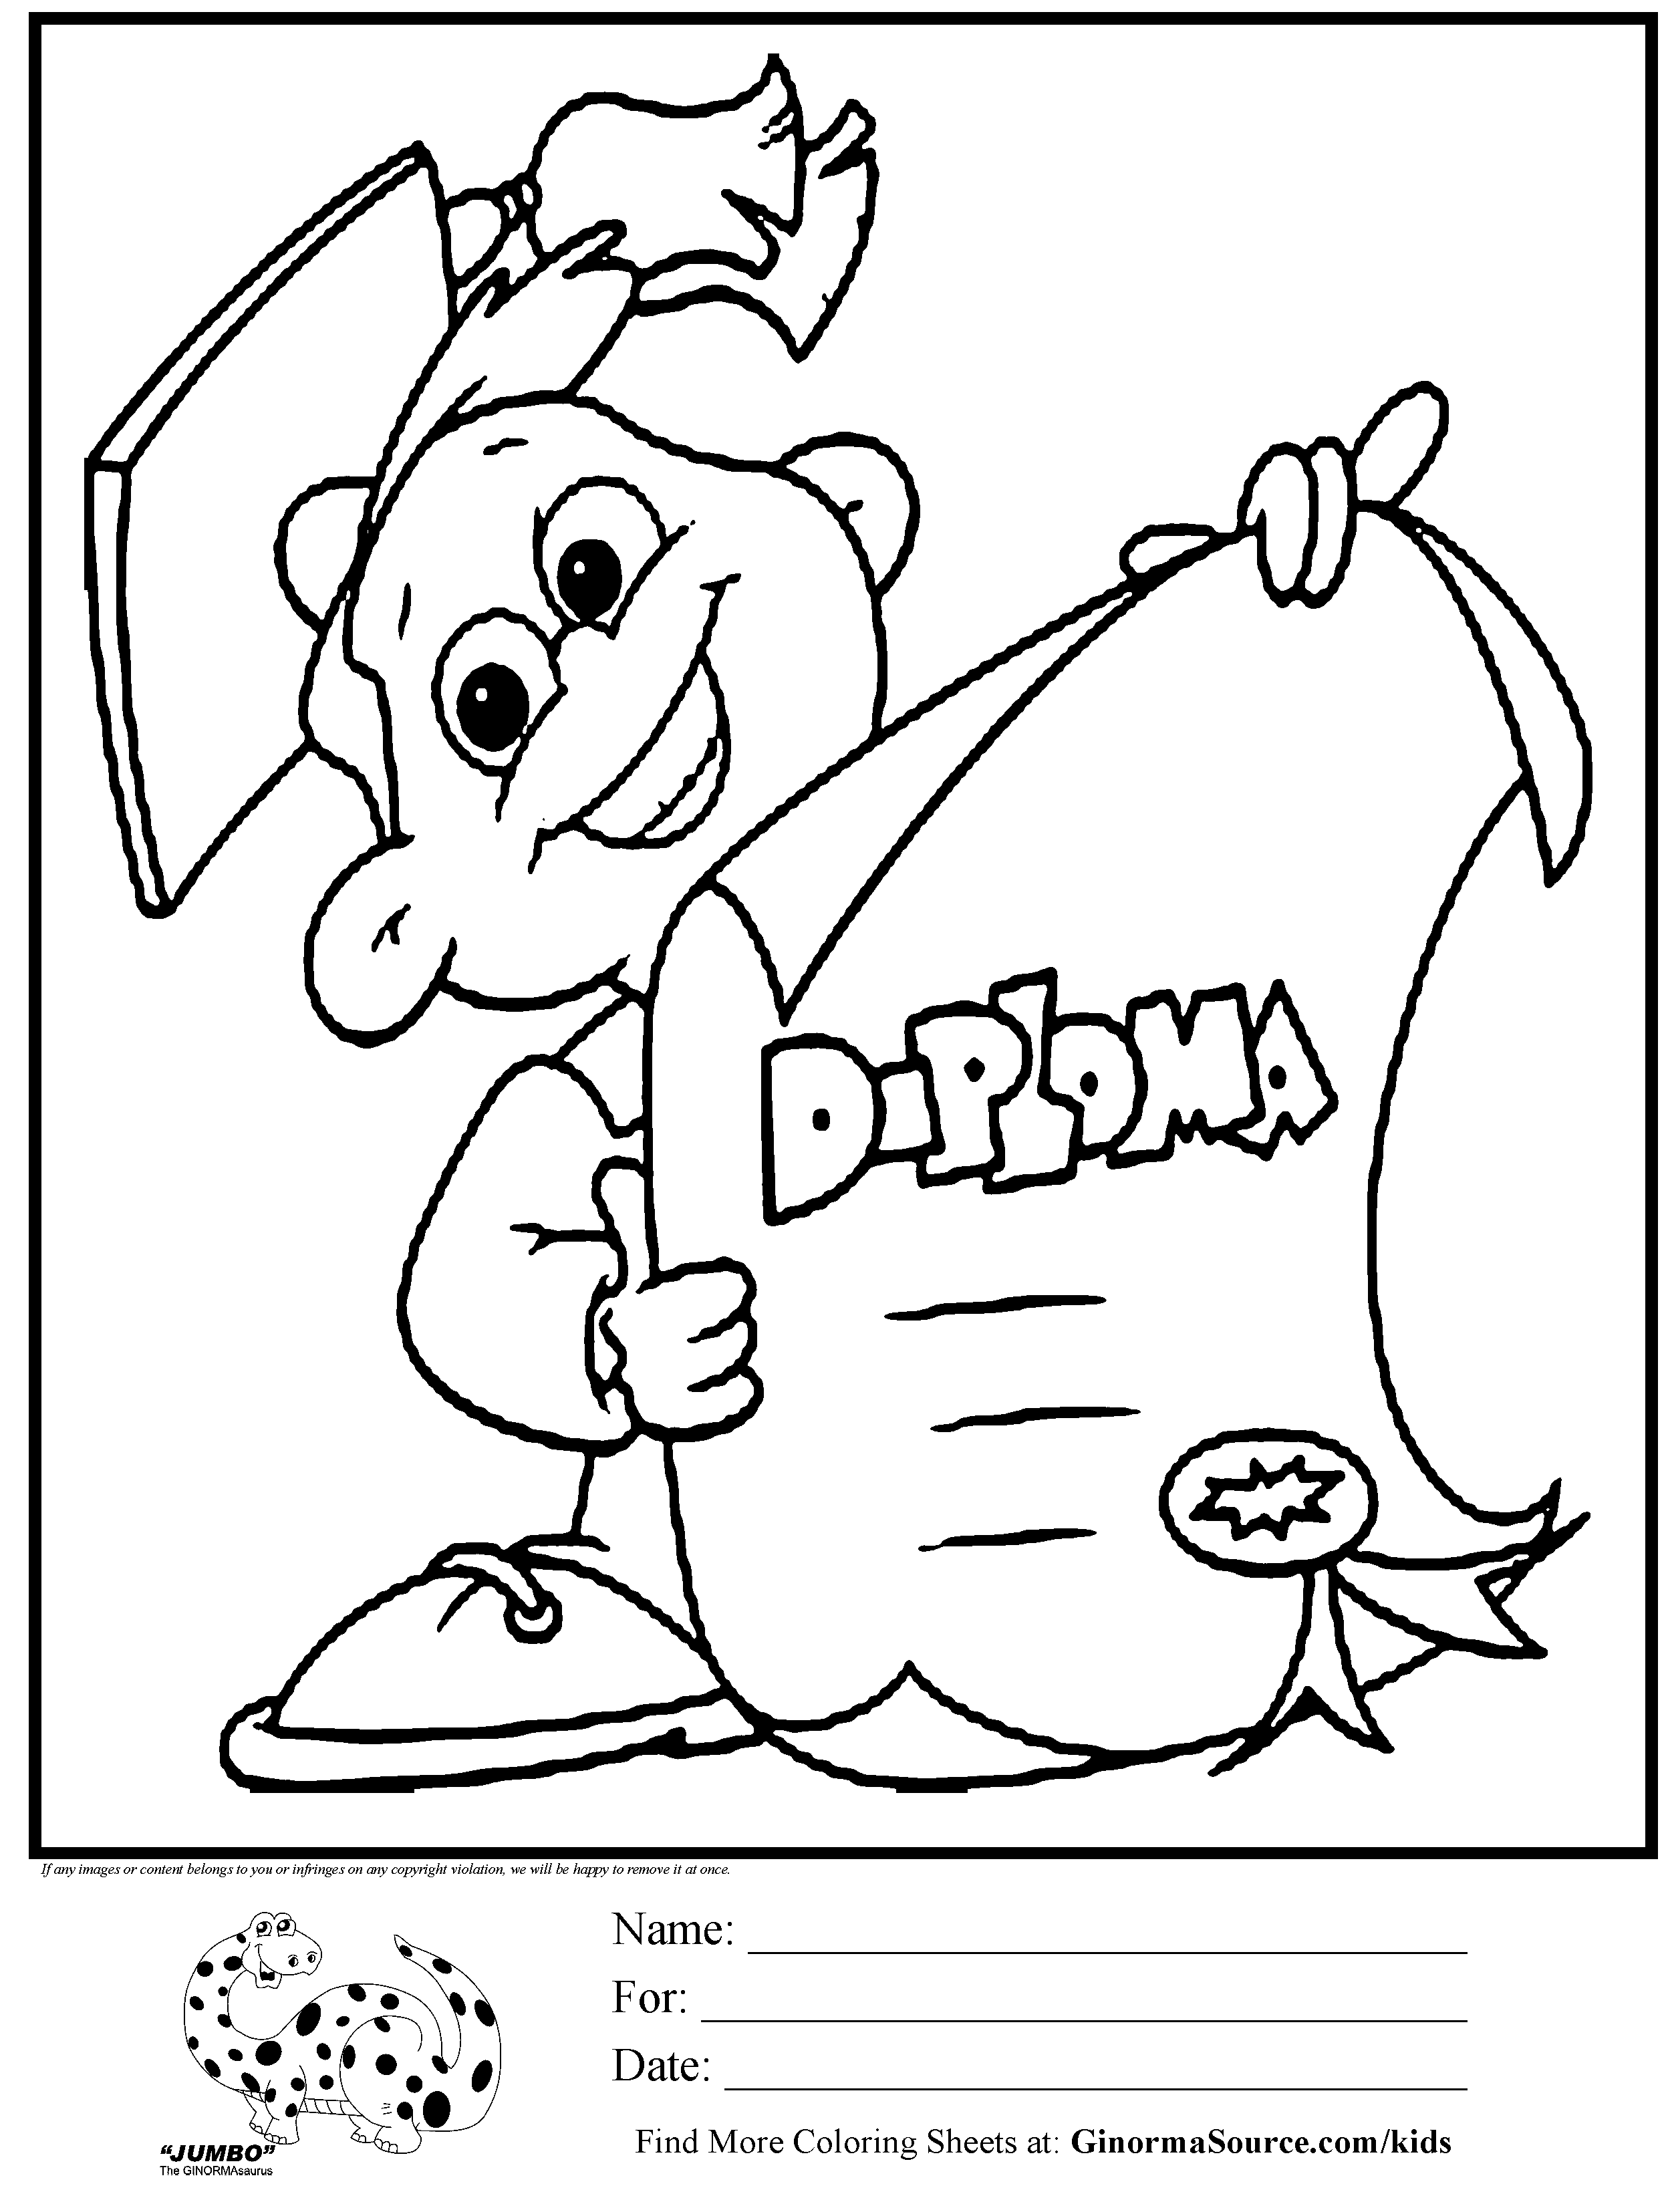 free coloring pages graduation free coloring pages graduation 0 - Free Coloring Pages For Kindergarten